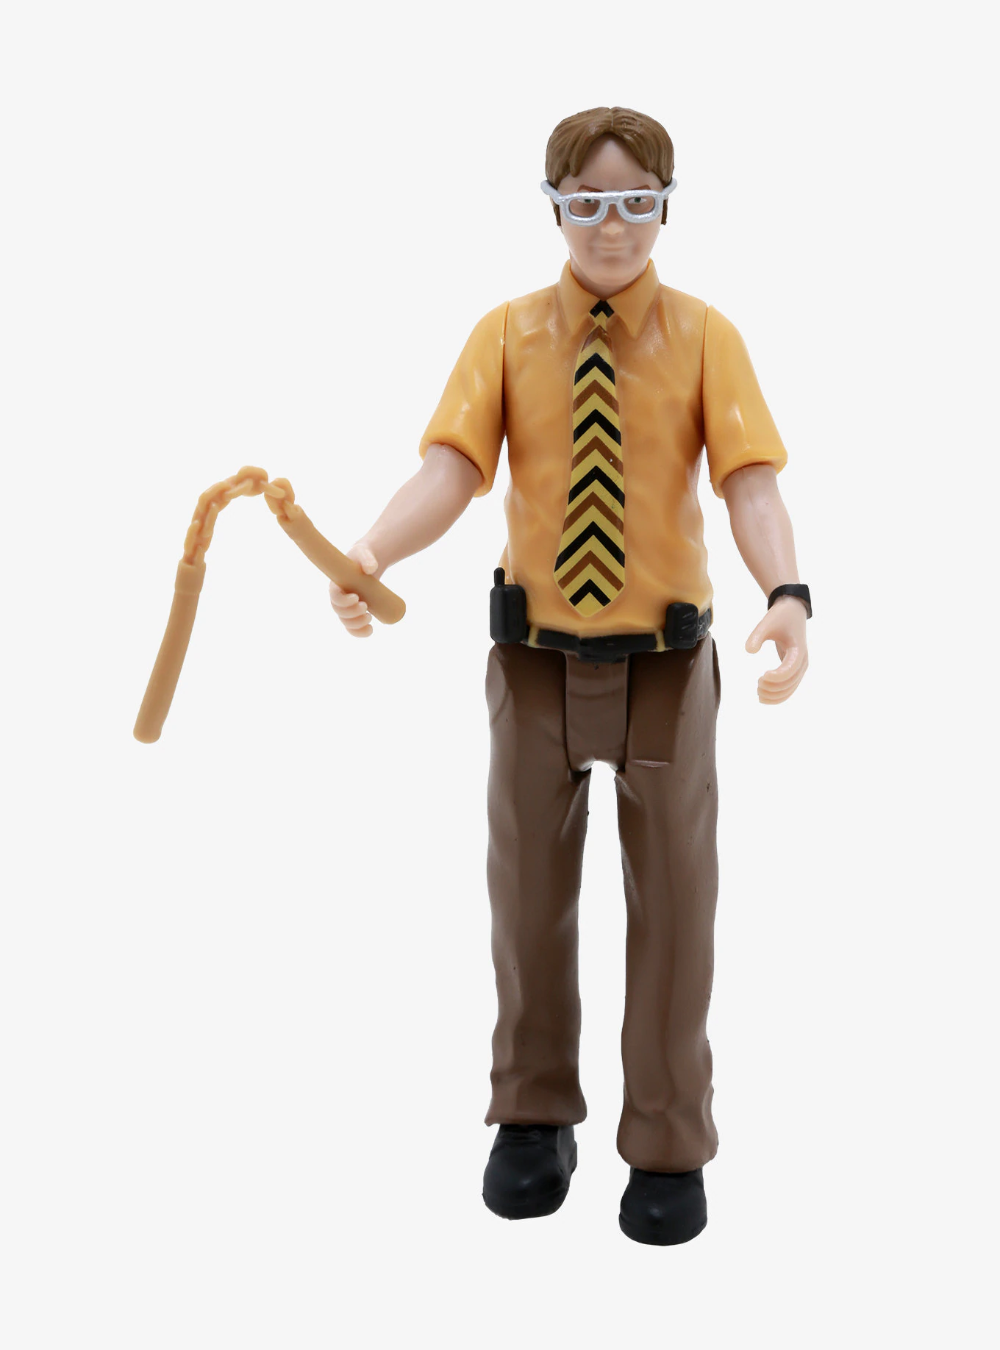 The Office Dwight Schrute Action Figure The Office Dwight Schrute The Office Dwight Action Figures